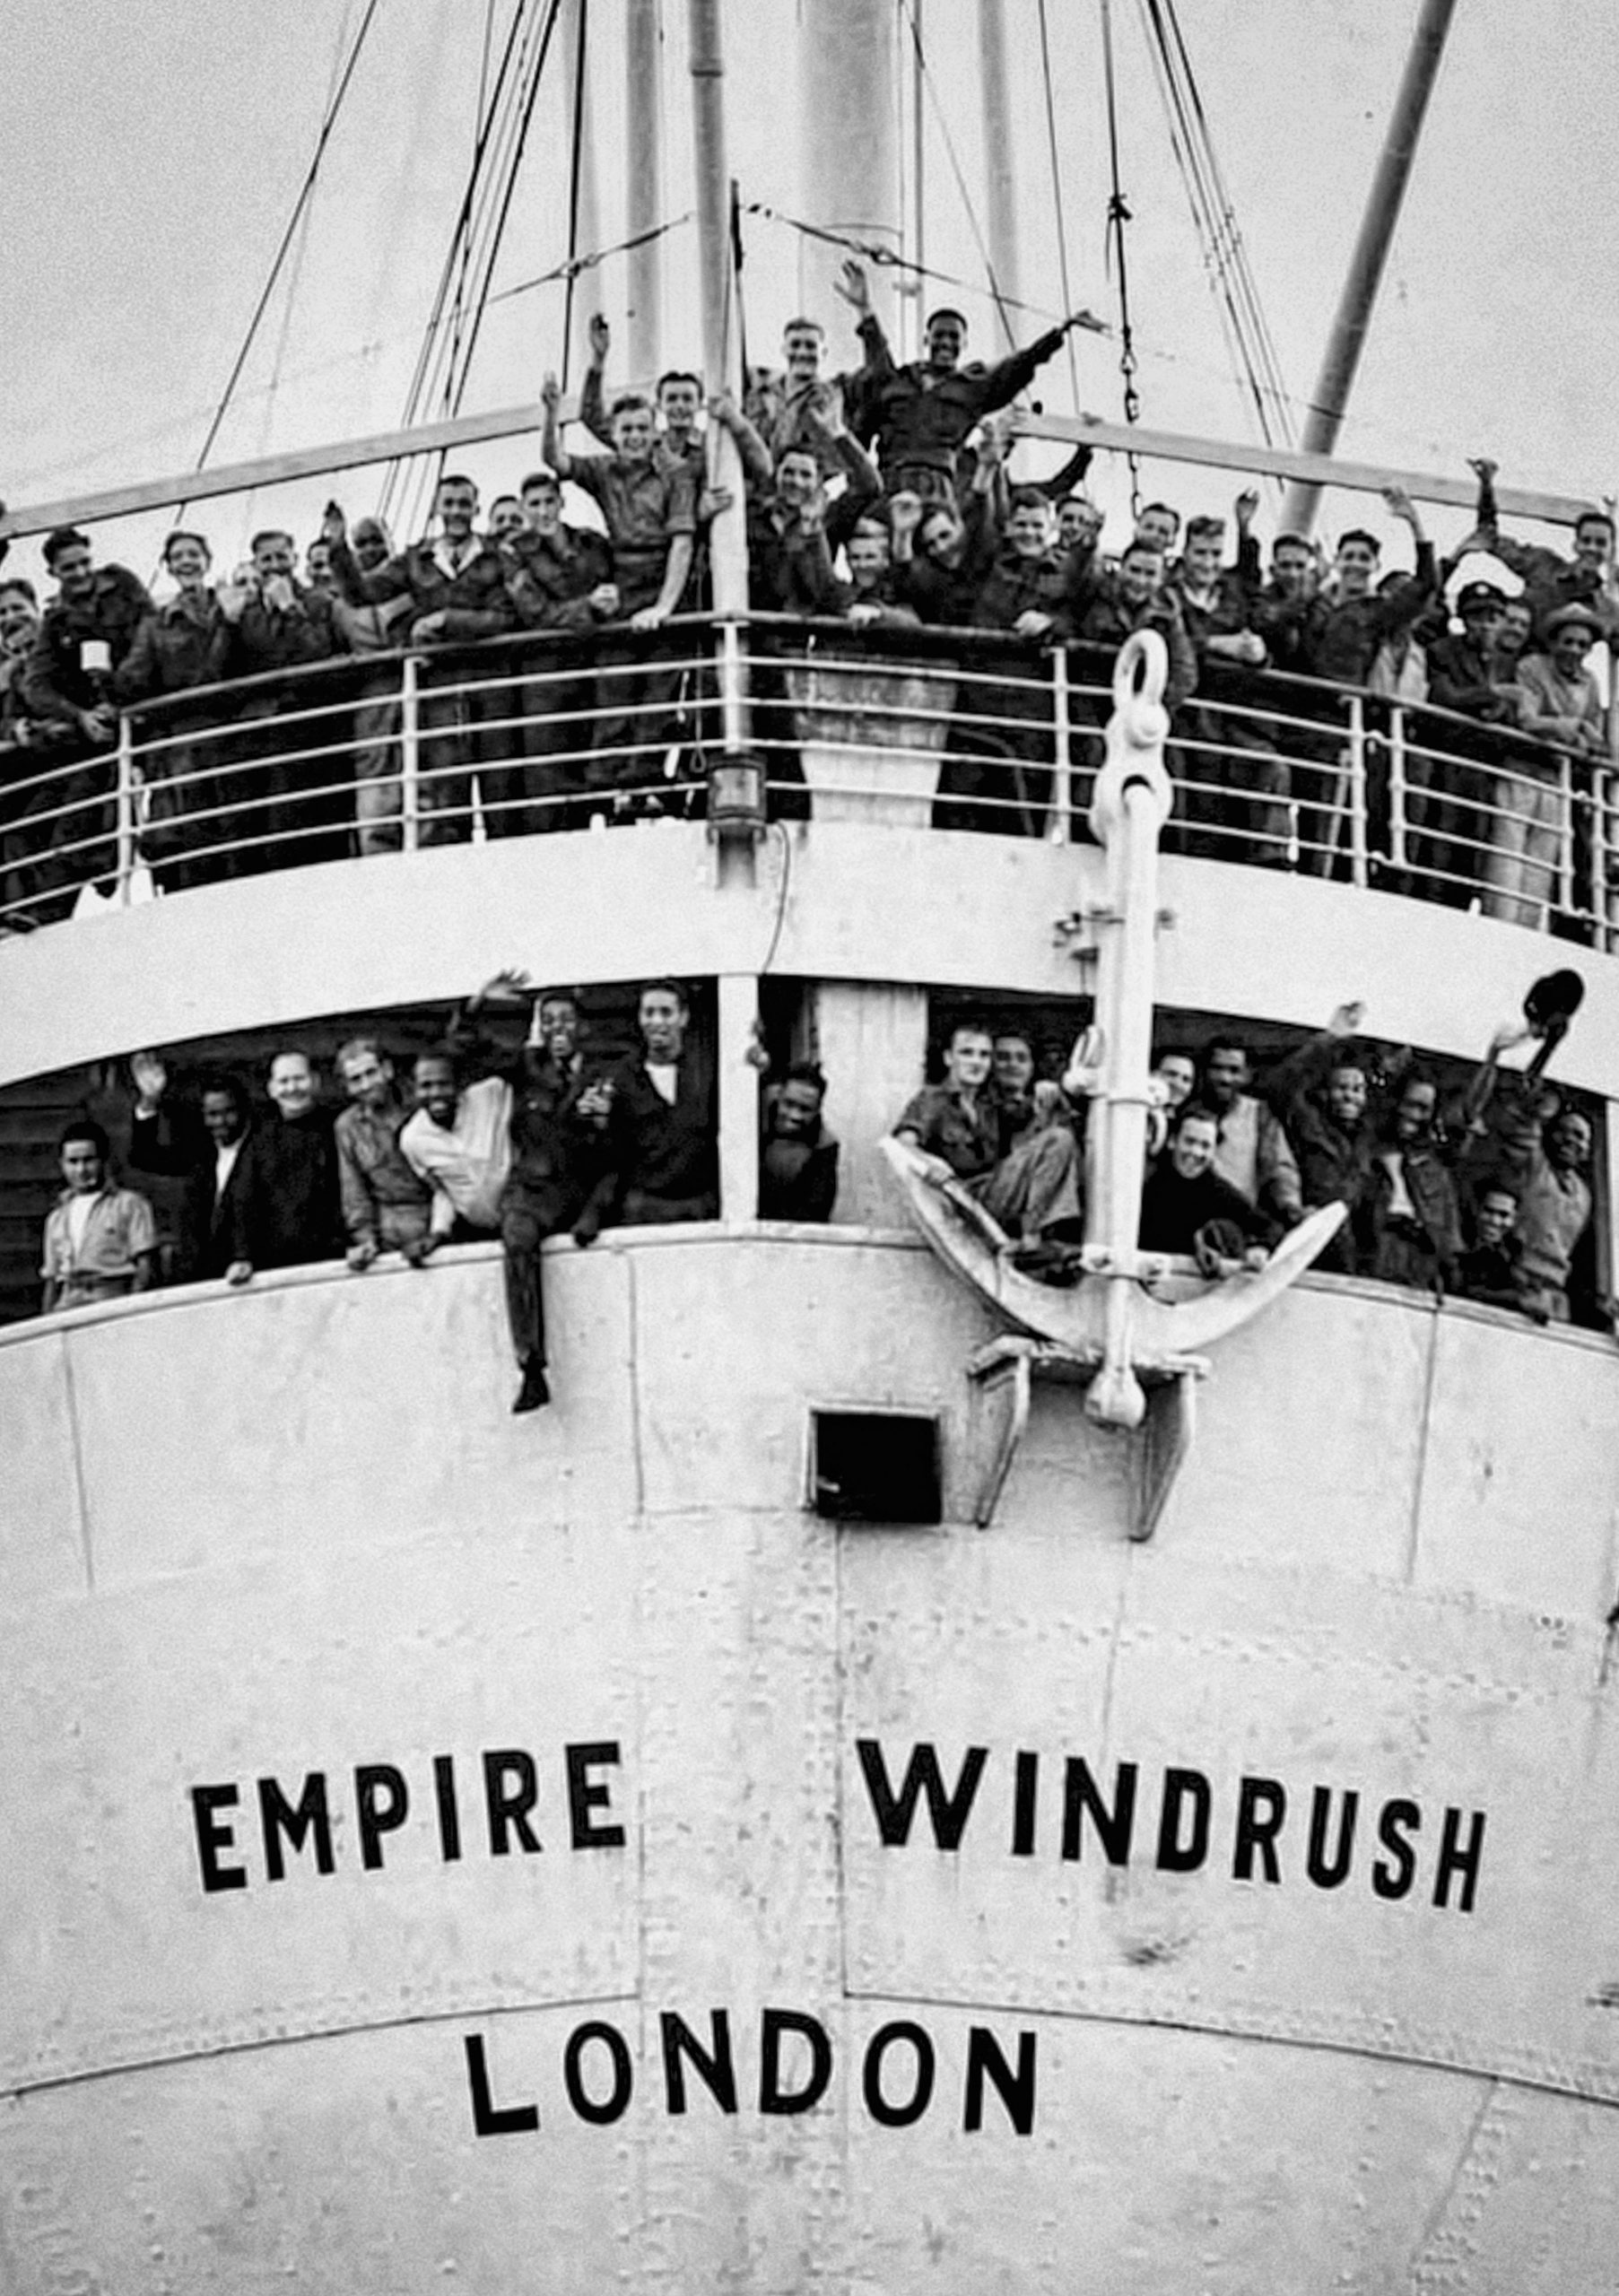 Windrush: Falling Through the Gaps